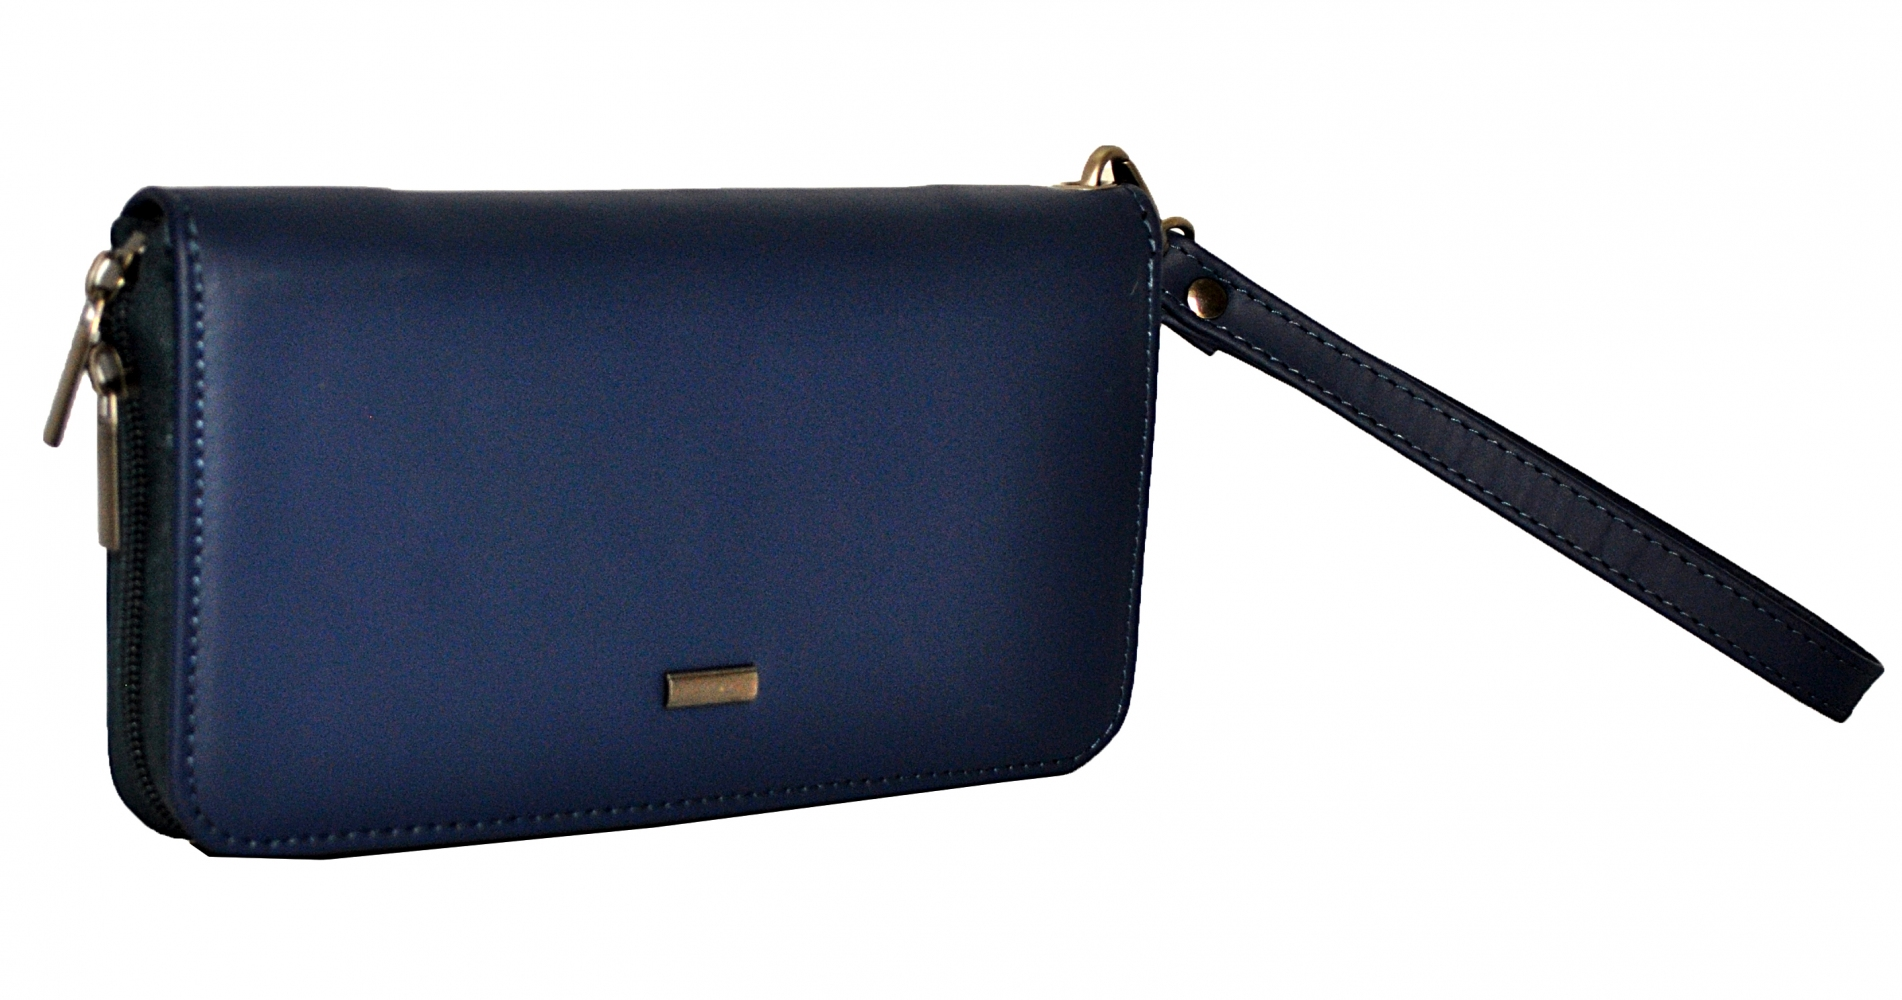 Men's handbag is 4306 blue